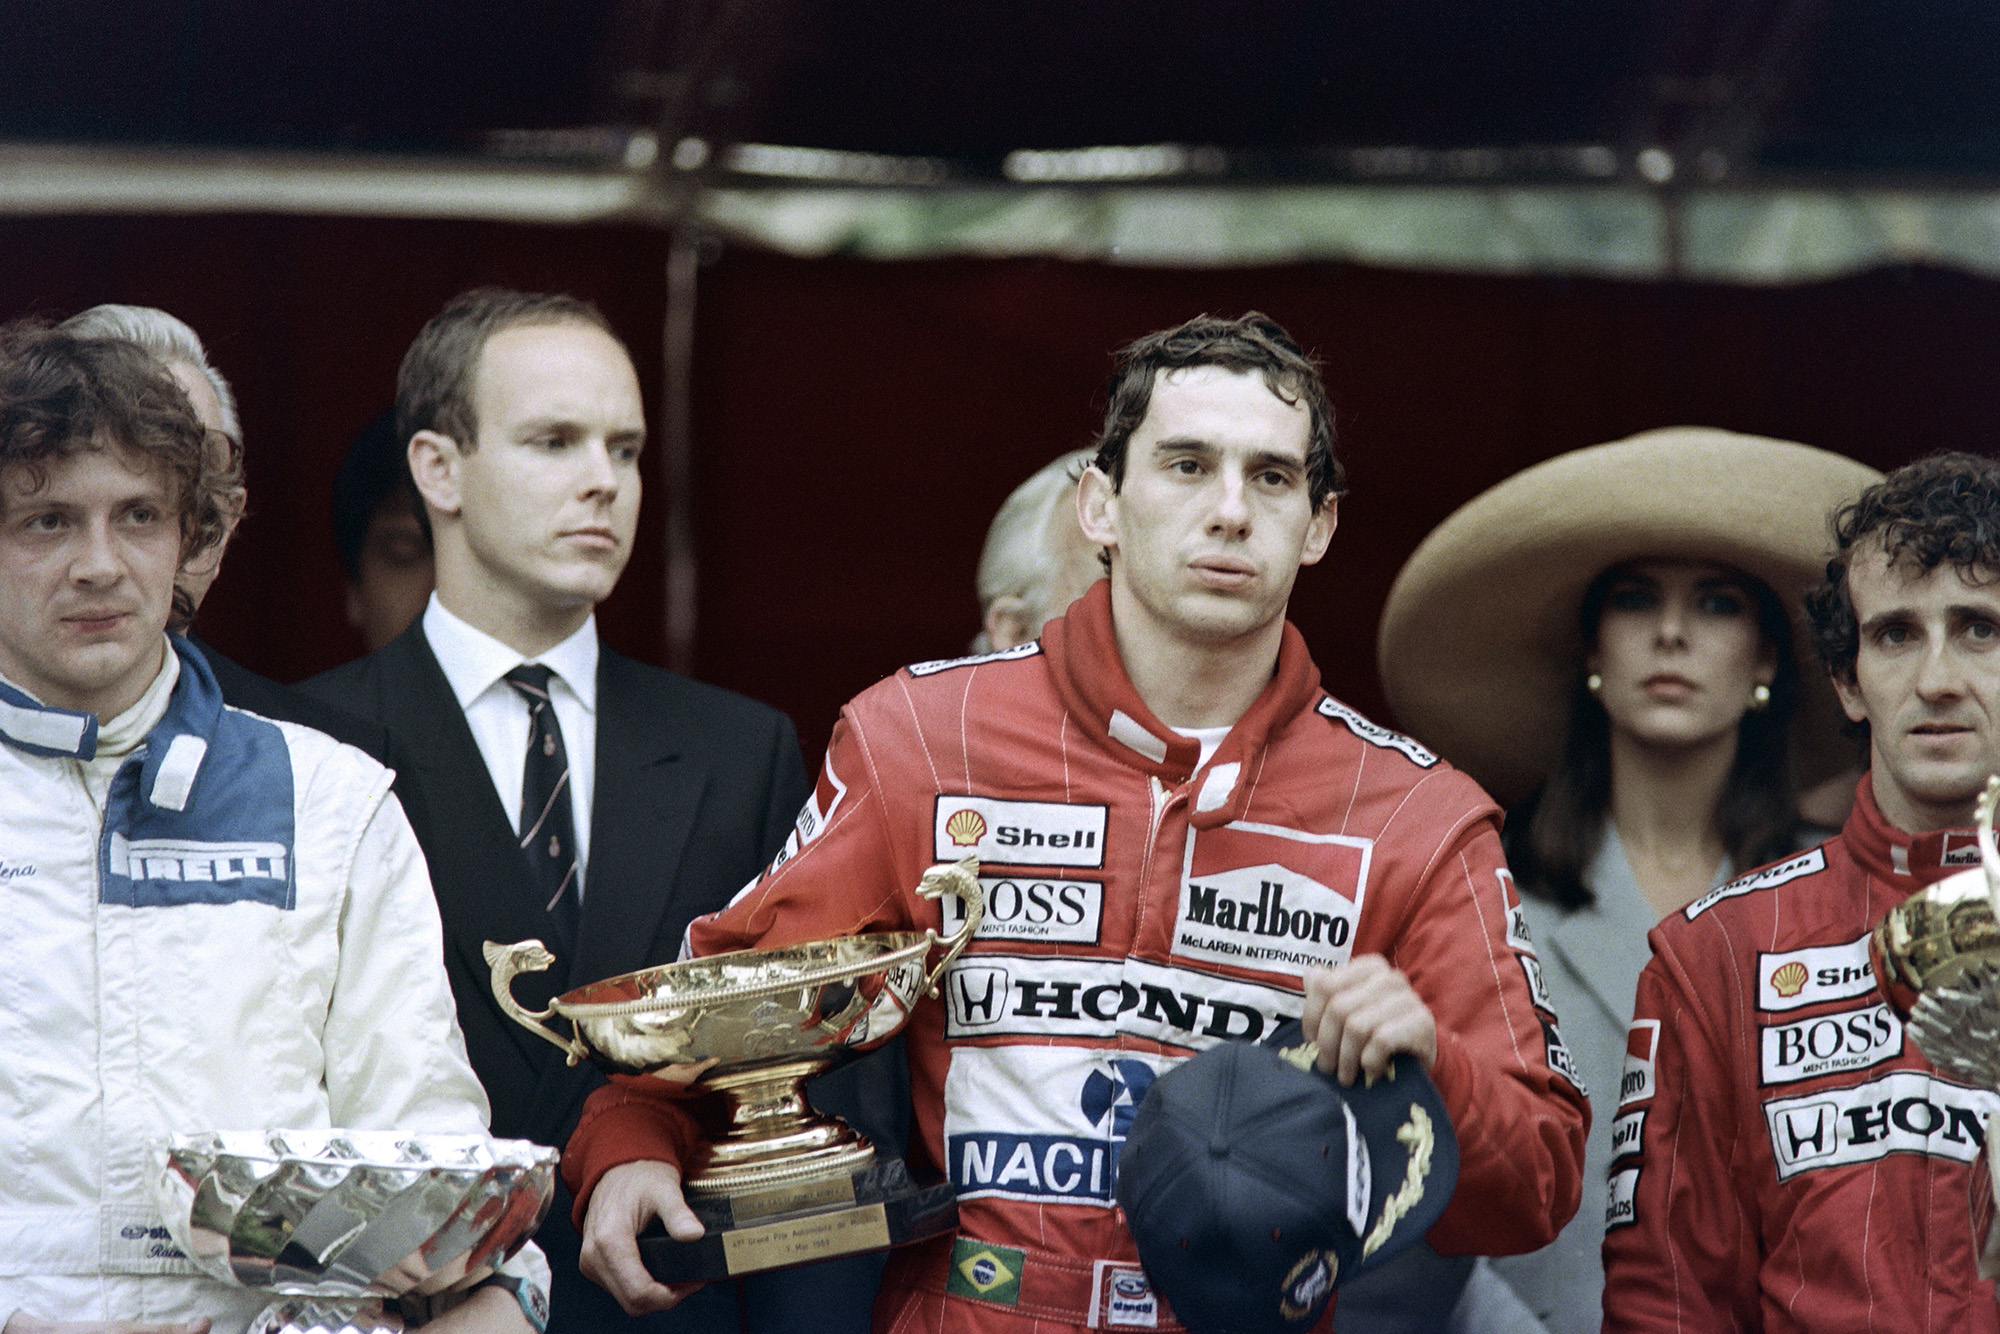 An exhausted Ayrton Senna clutches his trophy after winning the 1989 Monaco Grand Prix